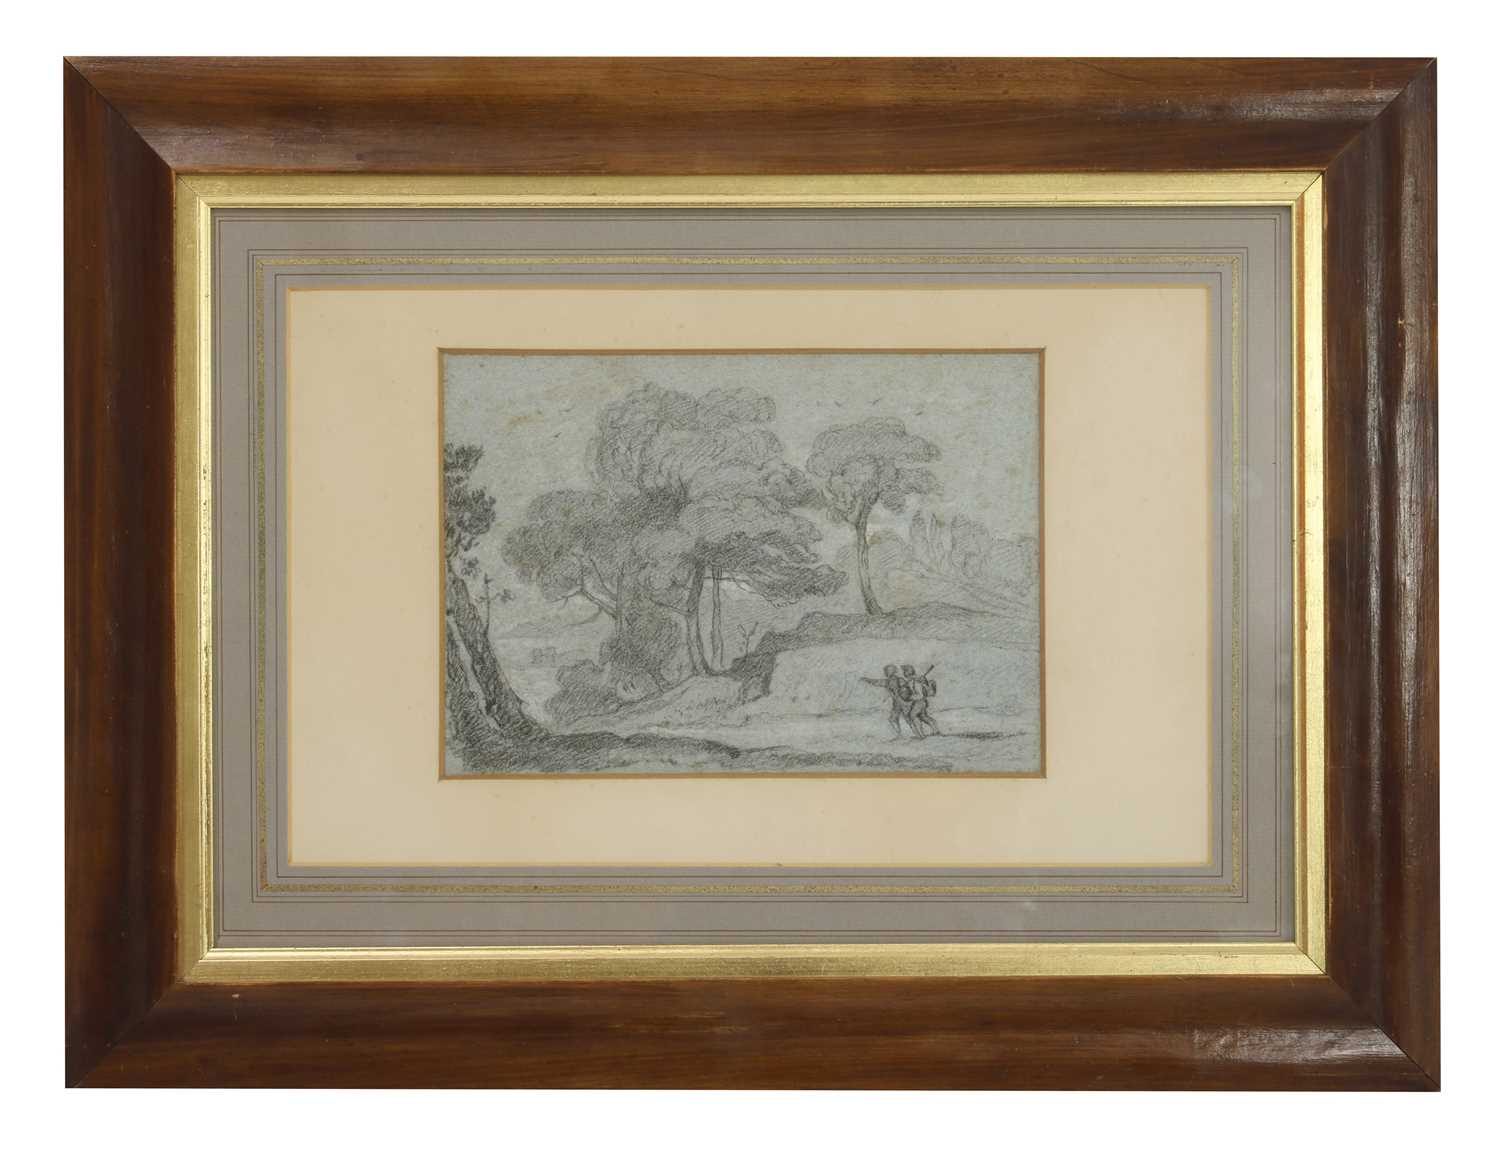 Attributed to John Sell Cotman (1782-1842) - Image 5 of 6